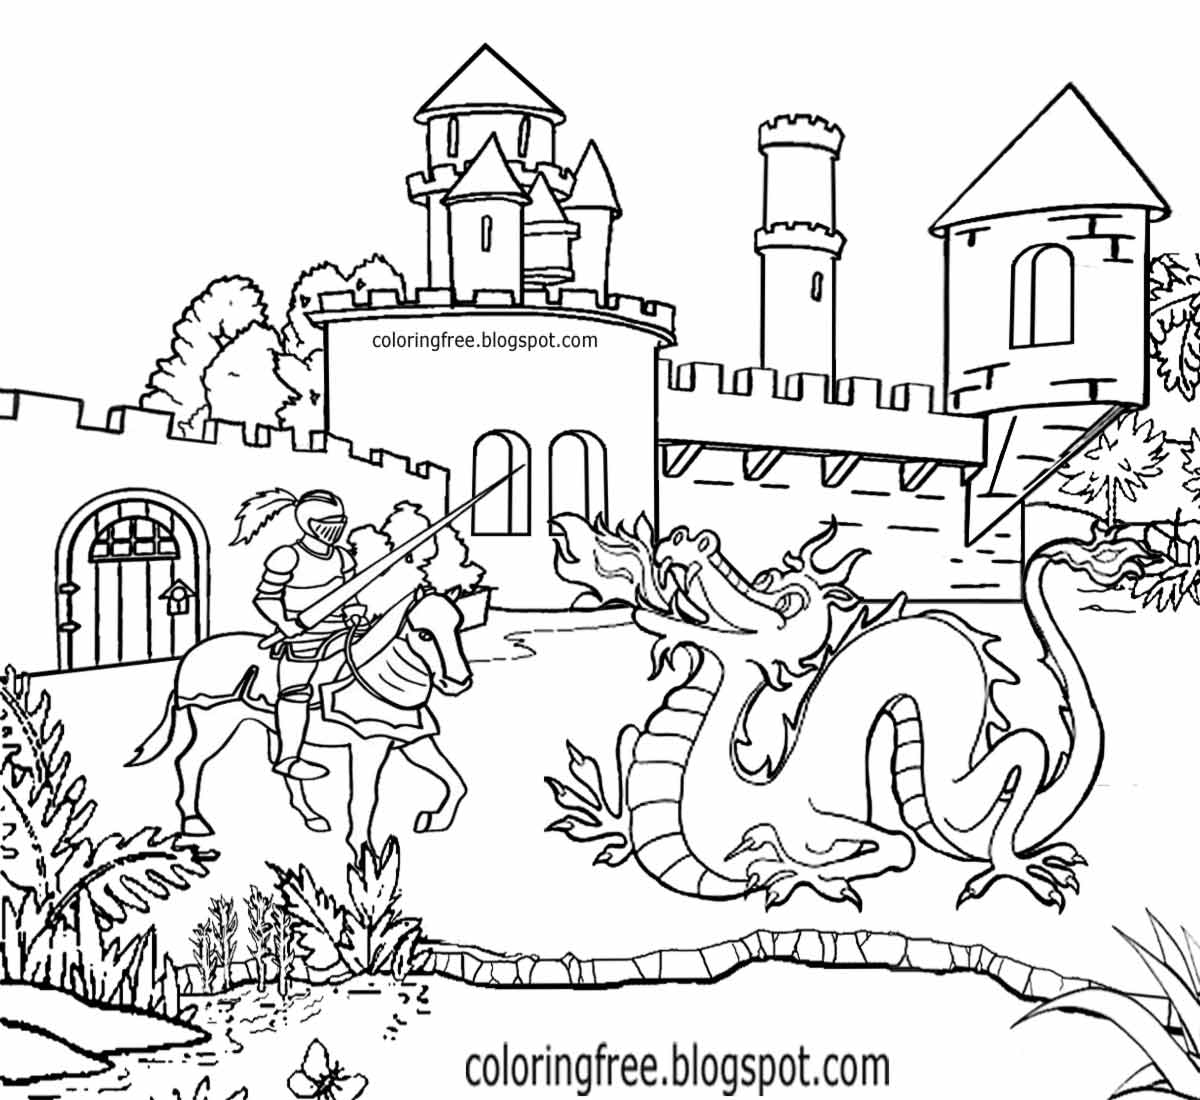 fancy castle coloring pages fantasy castle drawing at getdrawings free download pages castle coloring fancy